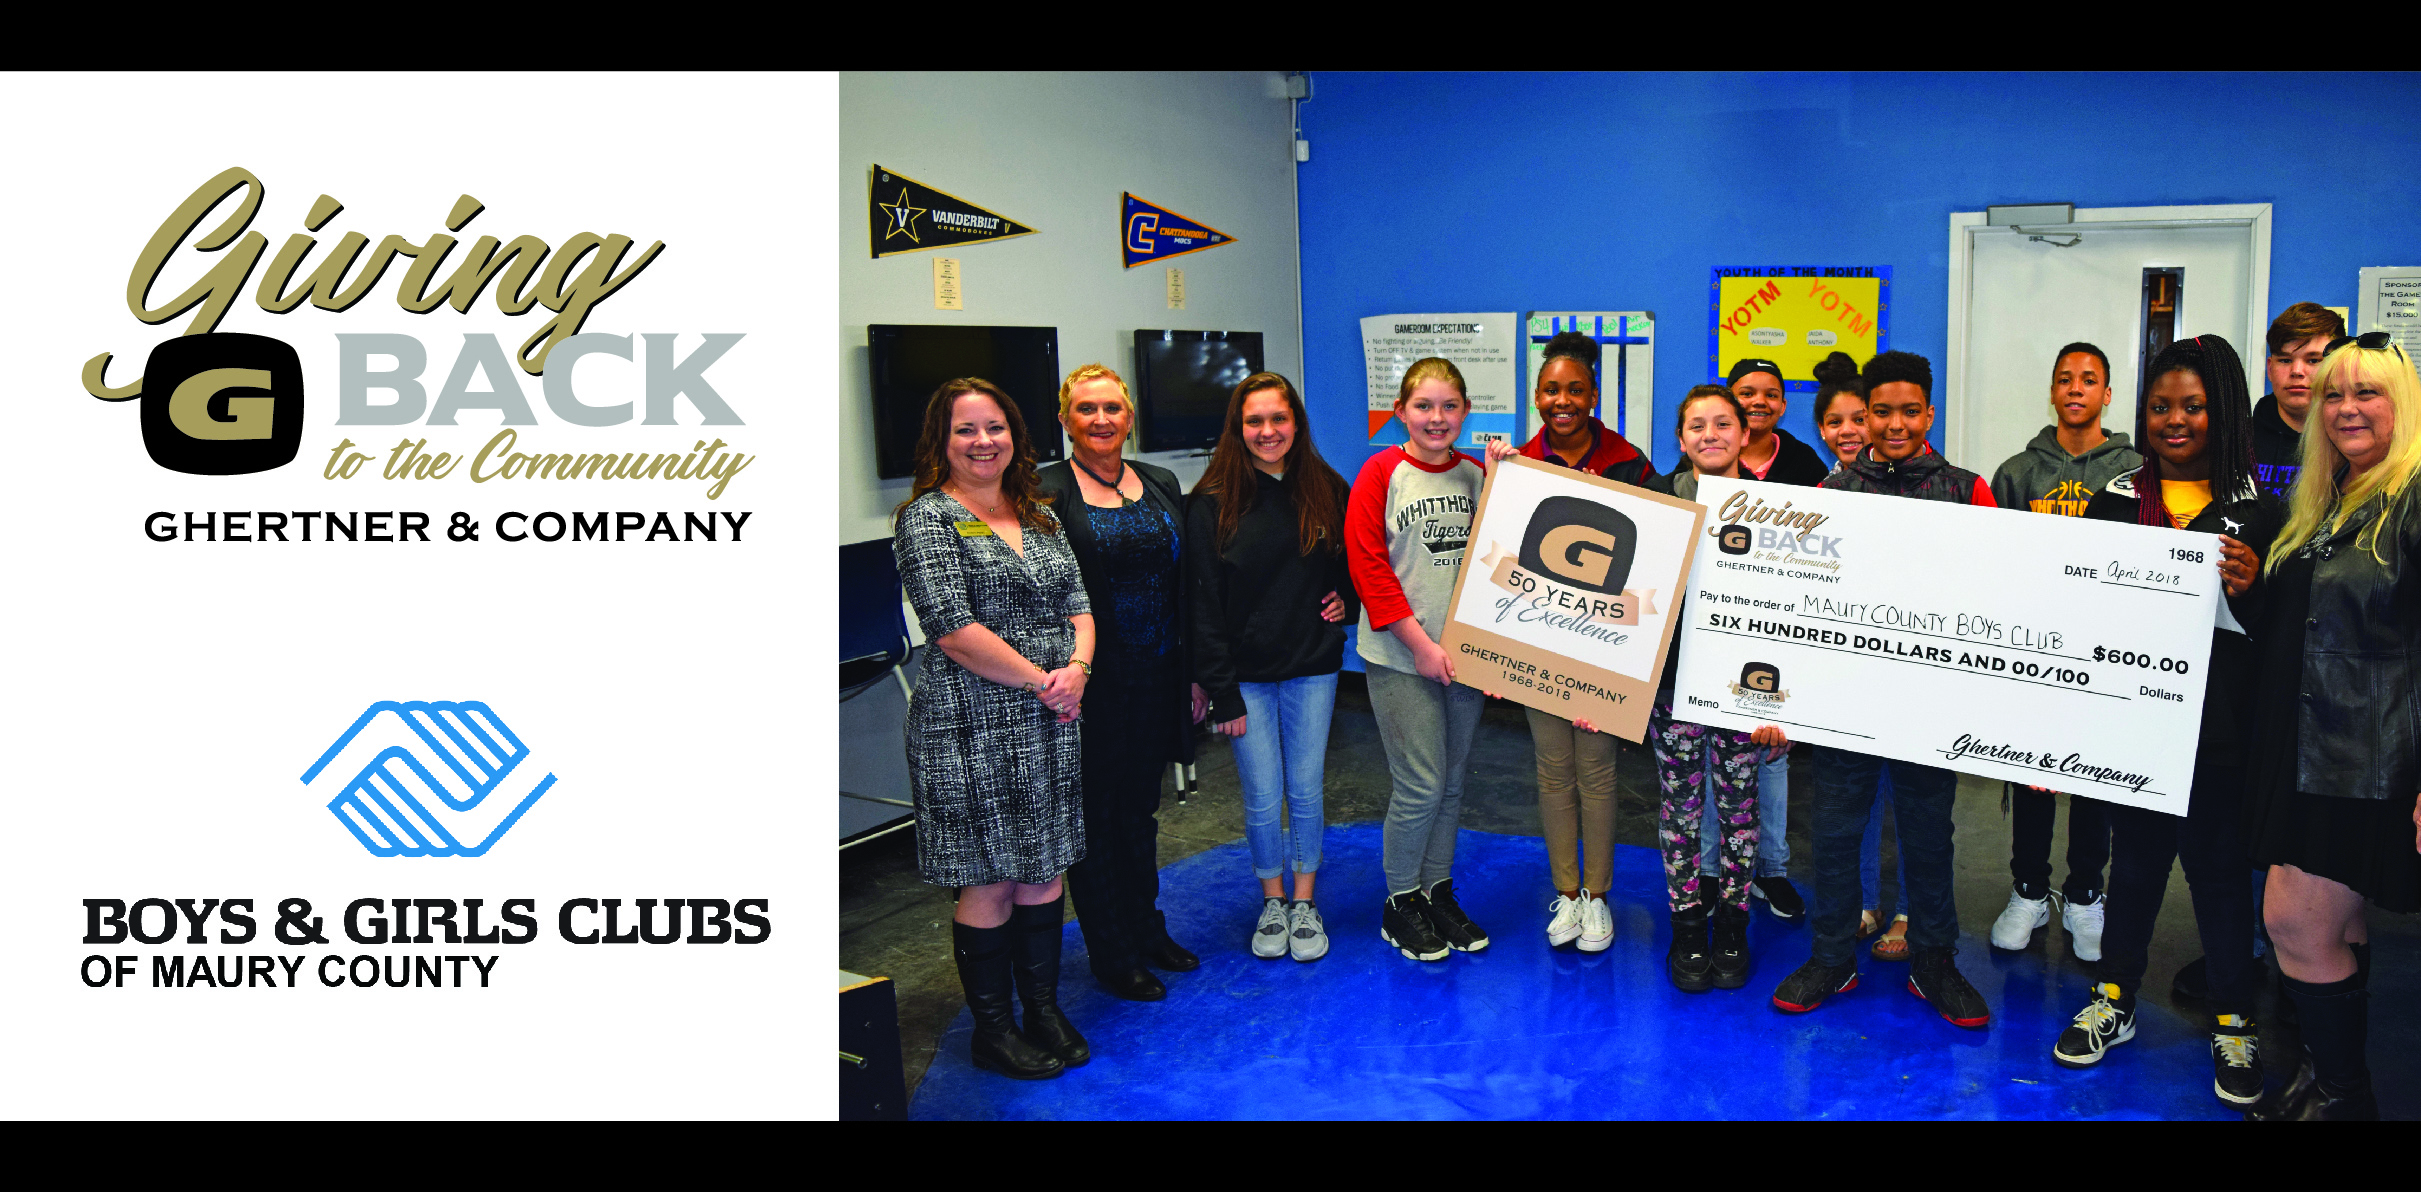 Stacy Adams, Ghertner & Company Director of Human Resources and Jaye Kloss, Ghertner & Company Director of Compliance and Training presented the check to this eager group of young people and staff.